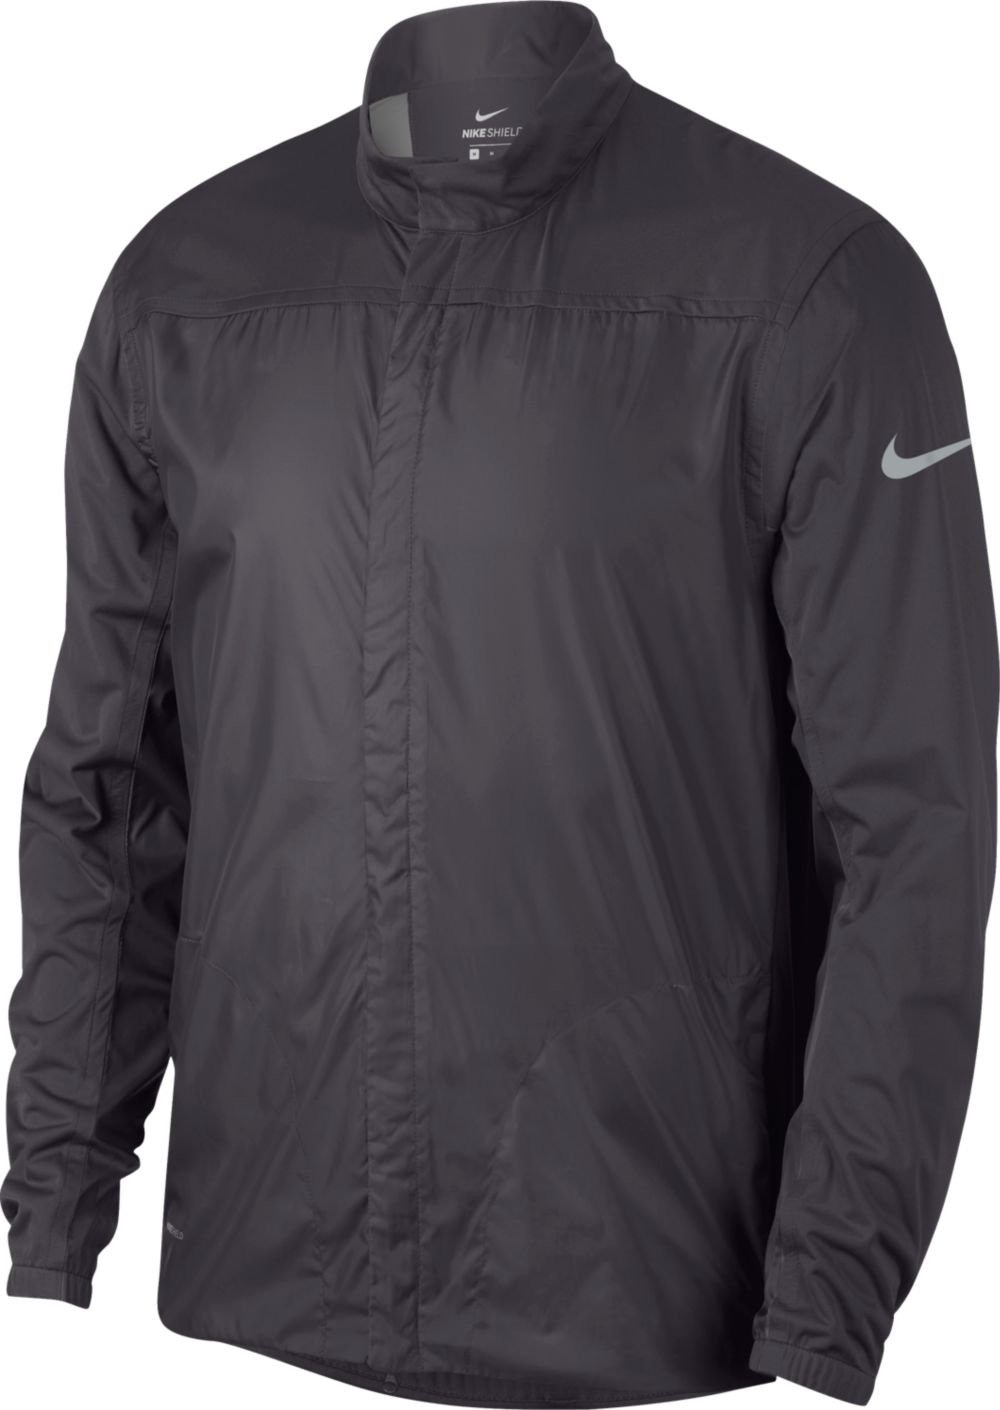 Nike Shield Full Zip Core Golf Jacket 2018 Gunsmoke/Black X-Large